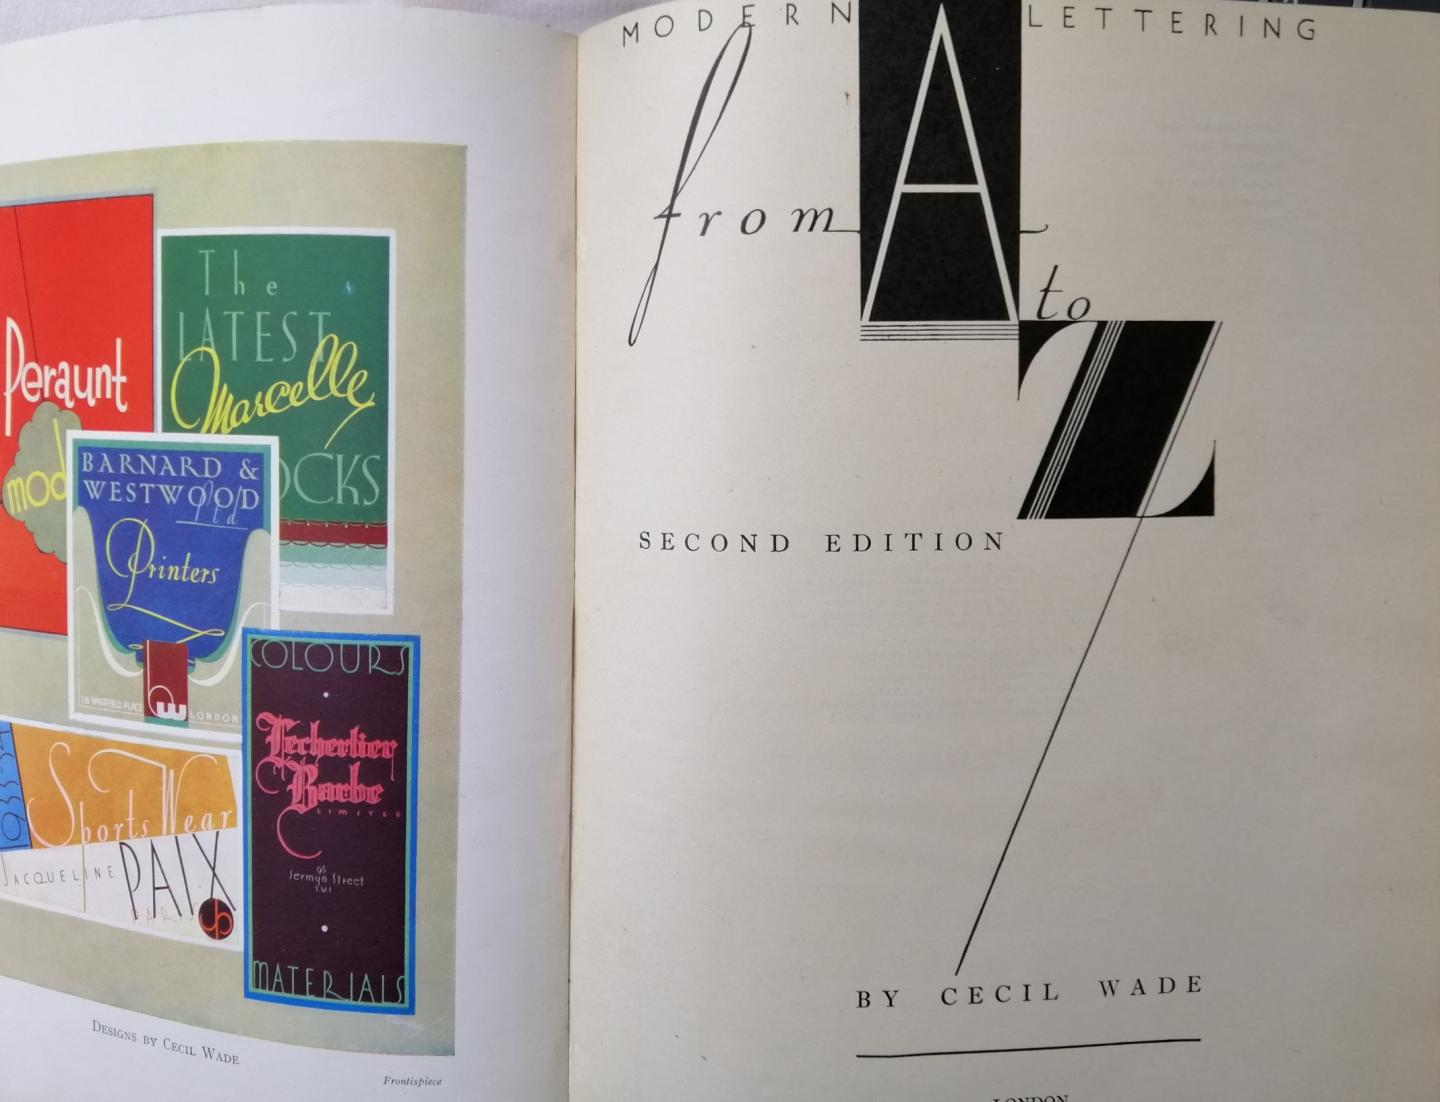 Wade, A. Cecil - Modern Lettering from A to Z.